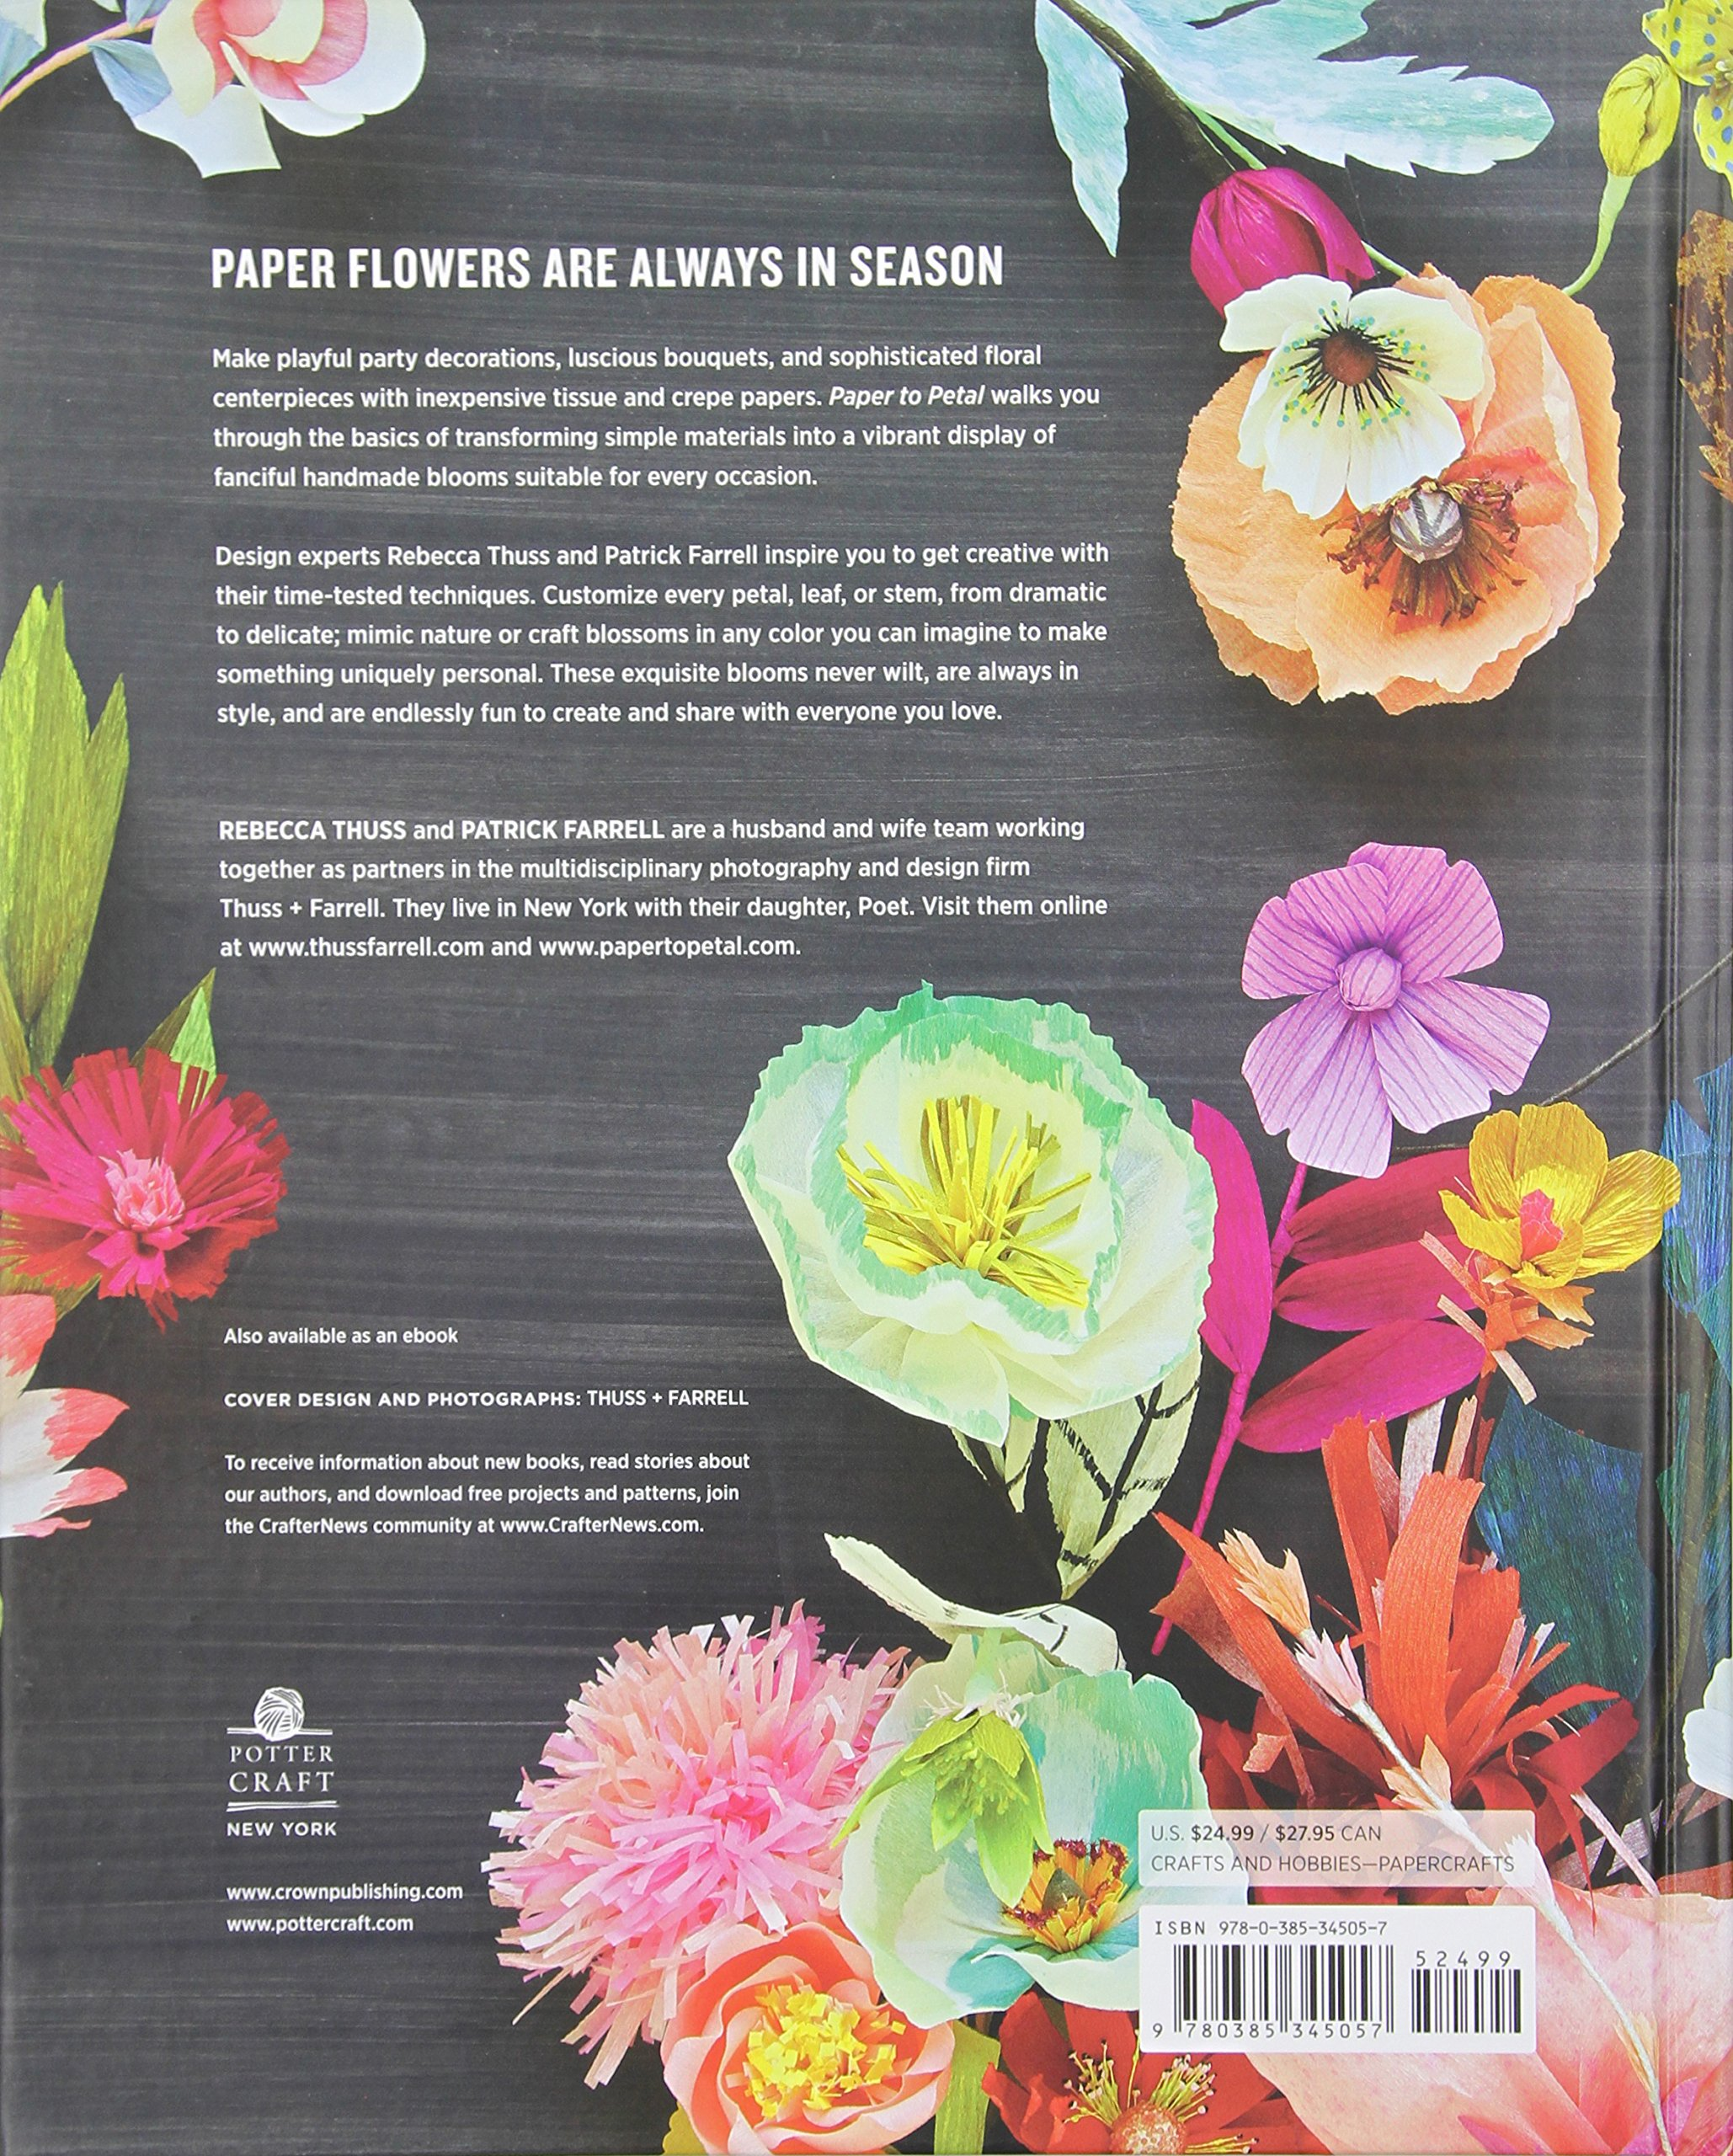 Paper to petal 75 whimsical paper flowers to craft by hand paper to petal 75 whimsical paper flowers to craft by hand rebecca thuss patrick farrell martha stewart 9780385345057 amazon books jeuxipadfo Choice Image